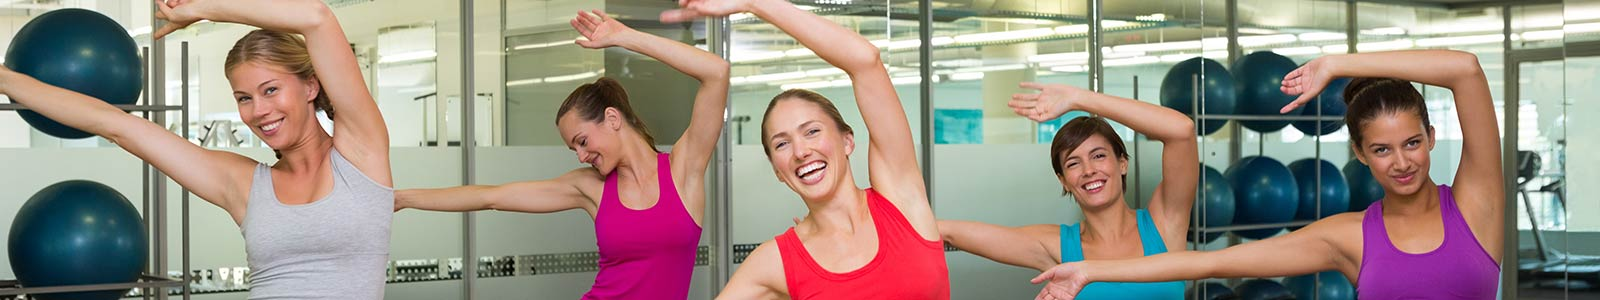 Frequently asked questions about BalletBeFit